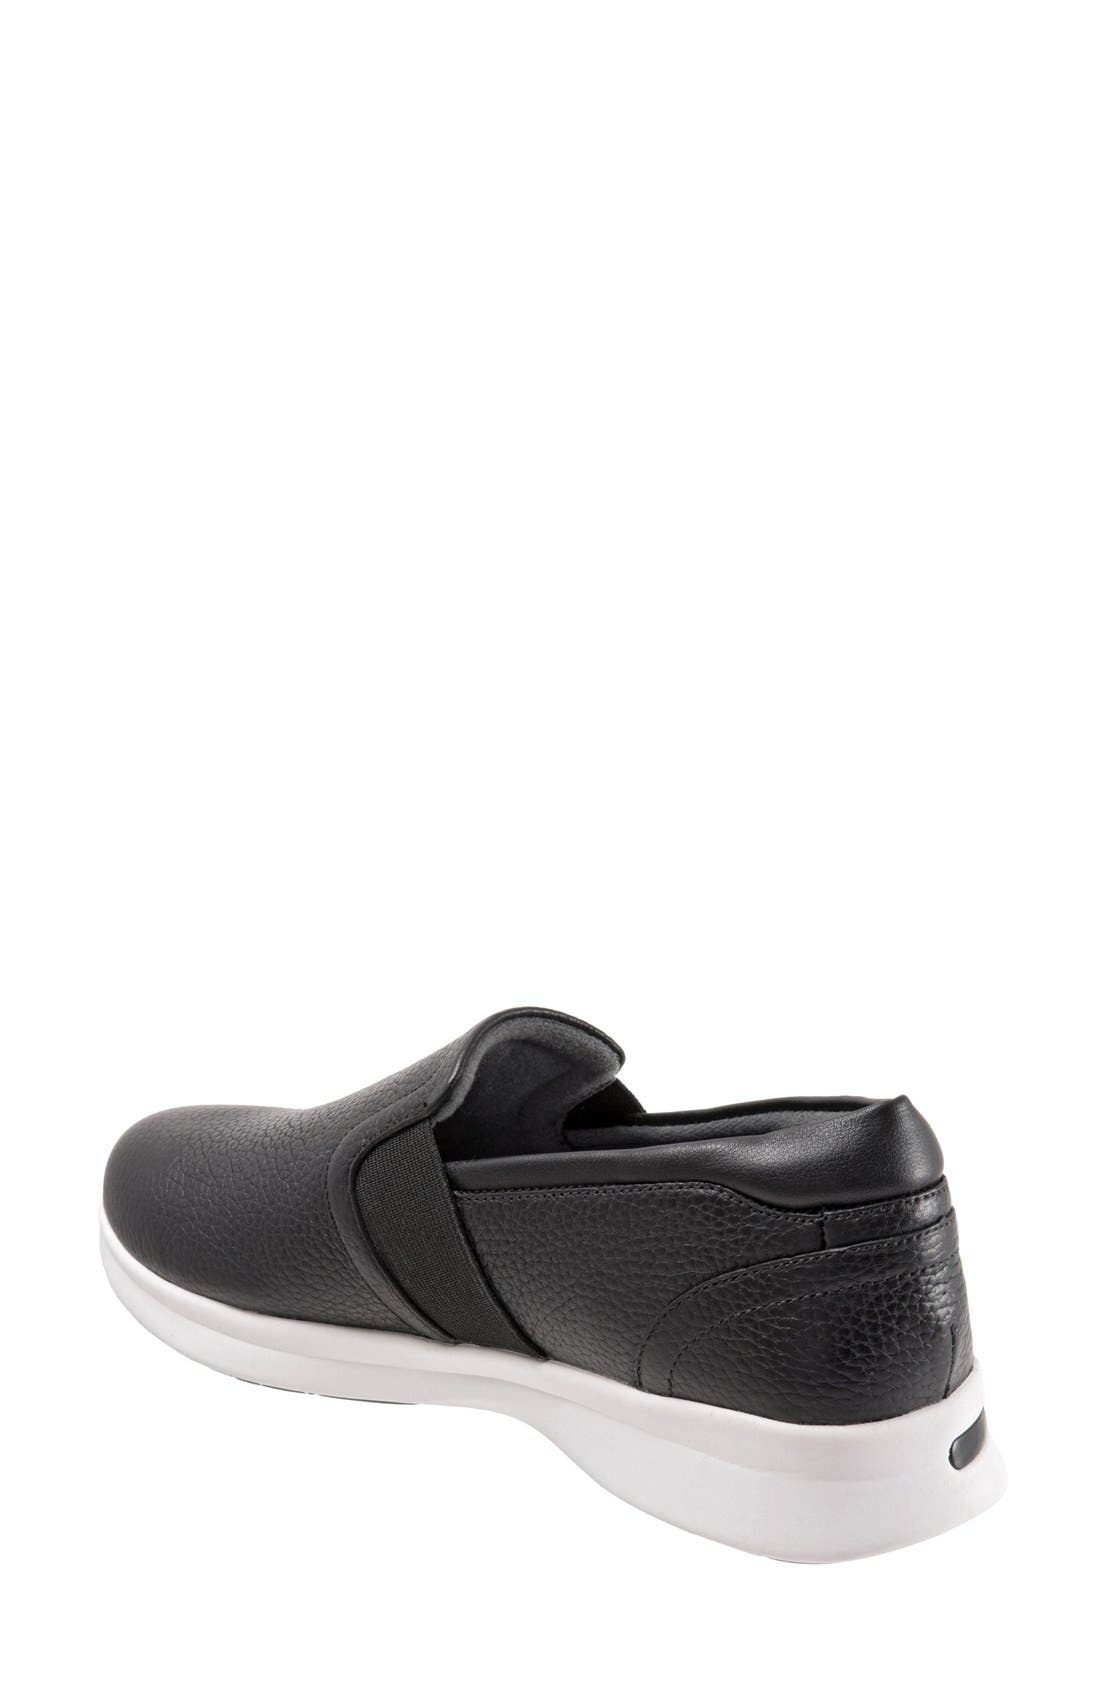 SOFTWALK<SUP>®</SUP>,                             'Vantage' Slip-On Sneaker,                             Alternate thumbnail 2, color,                             BLACK / WHITE LEATHER